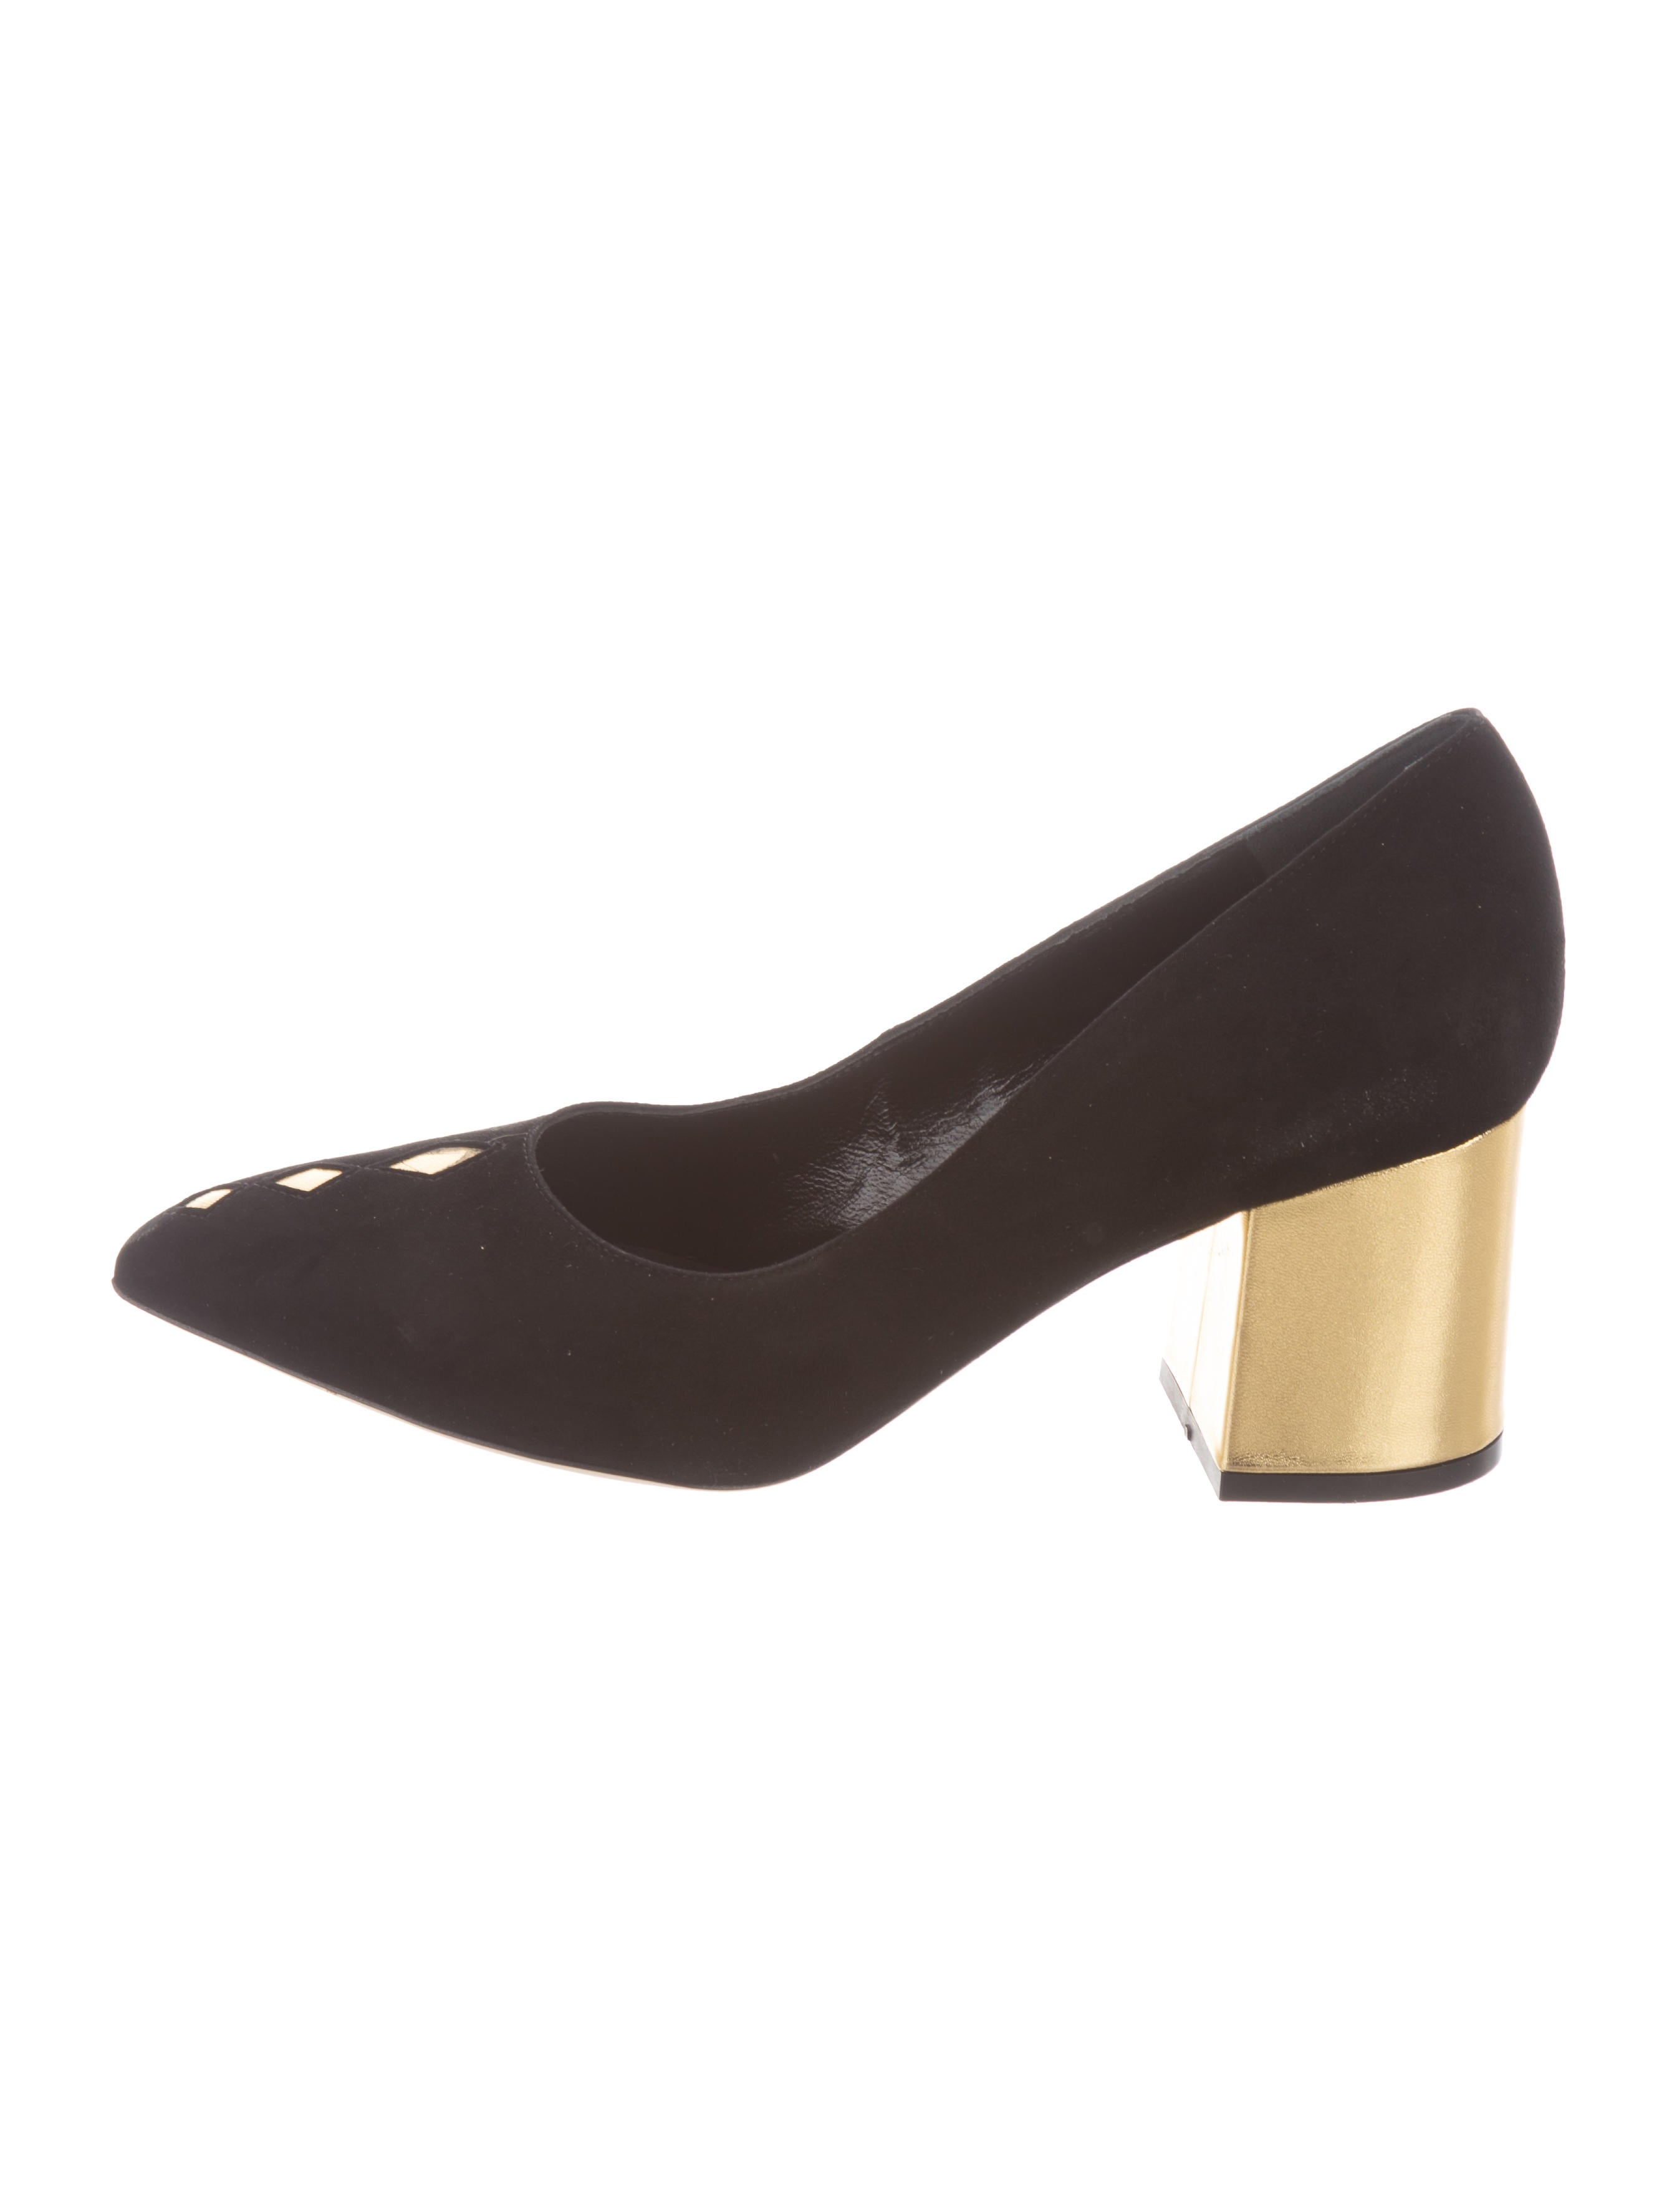 very cheap online Abel Muñoz Leather Pointed-Toe Pumps sale really brand new unisex cheap price latest cheap online PfVudJrvei